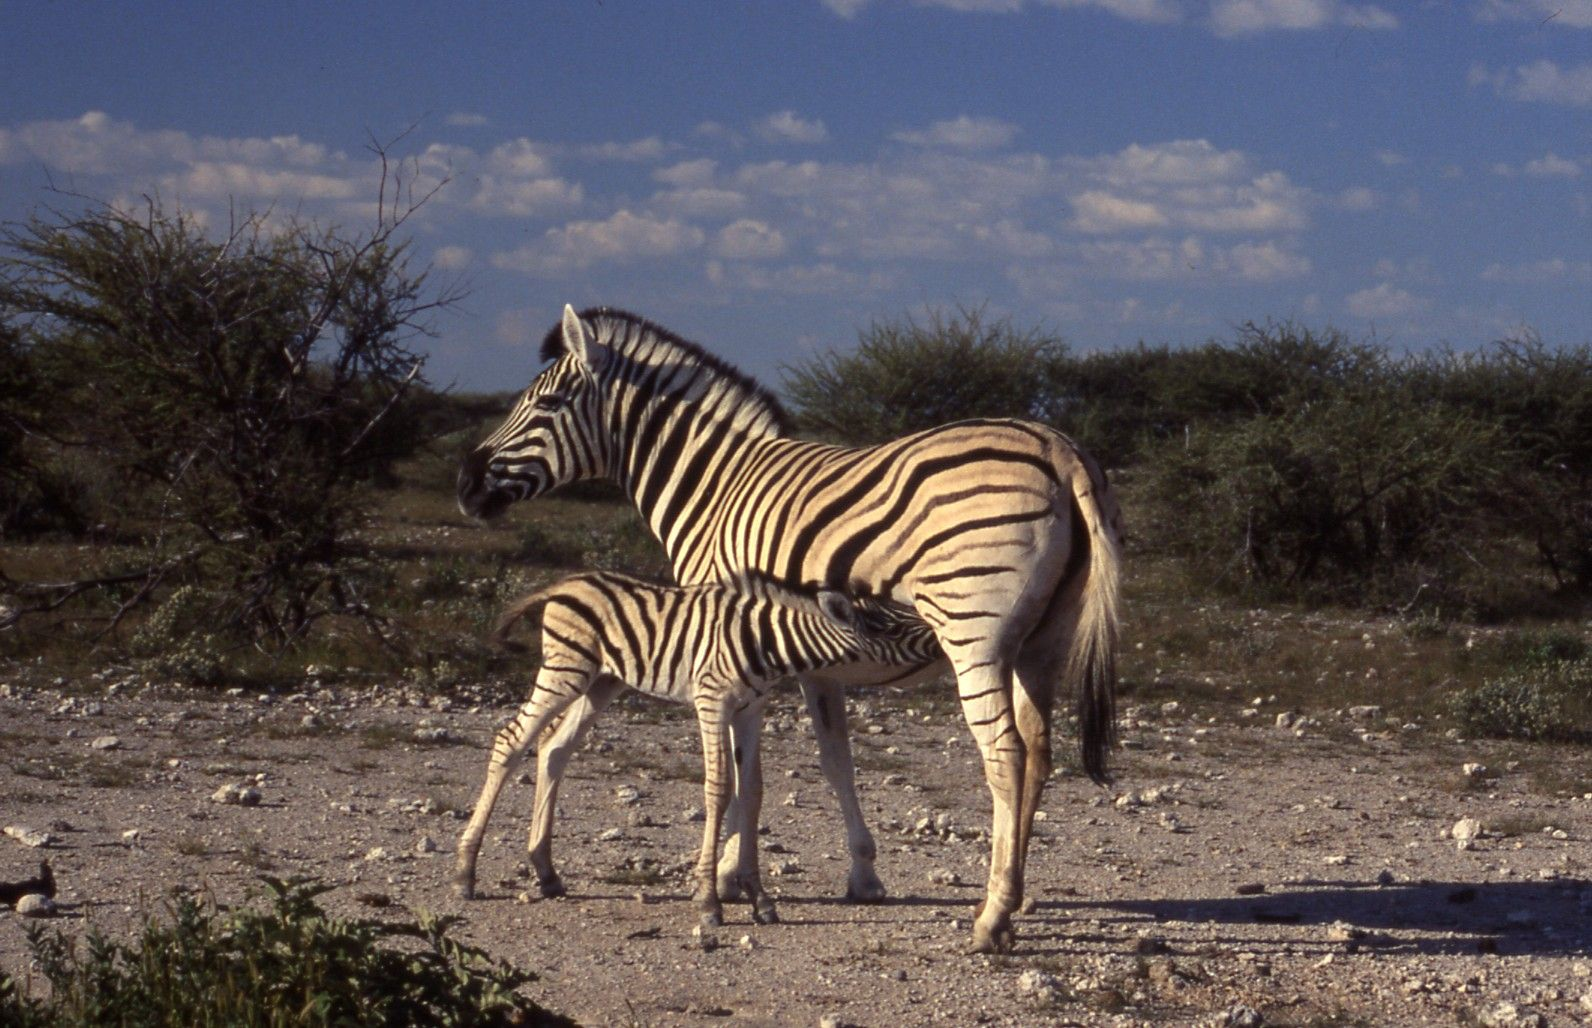 Zebra and fola in Etosha, the first animals I saw when I entered into the park.